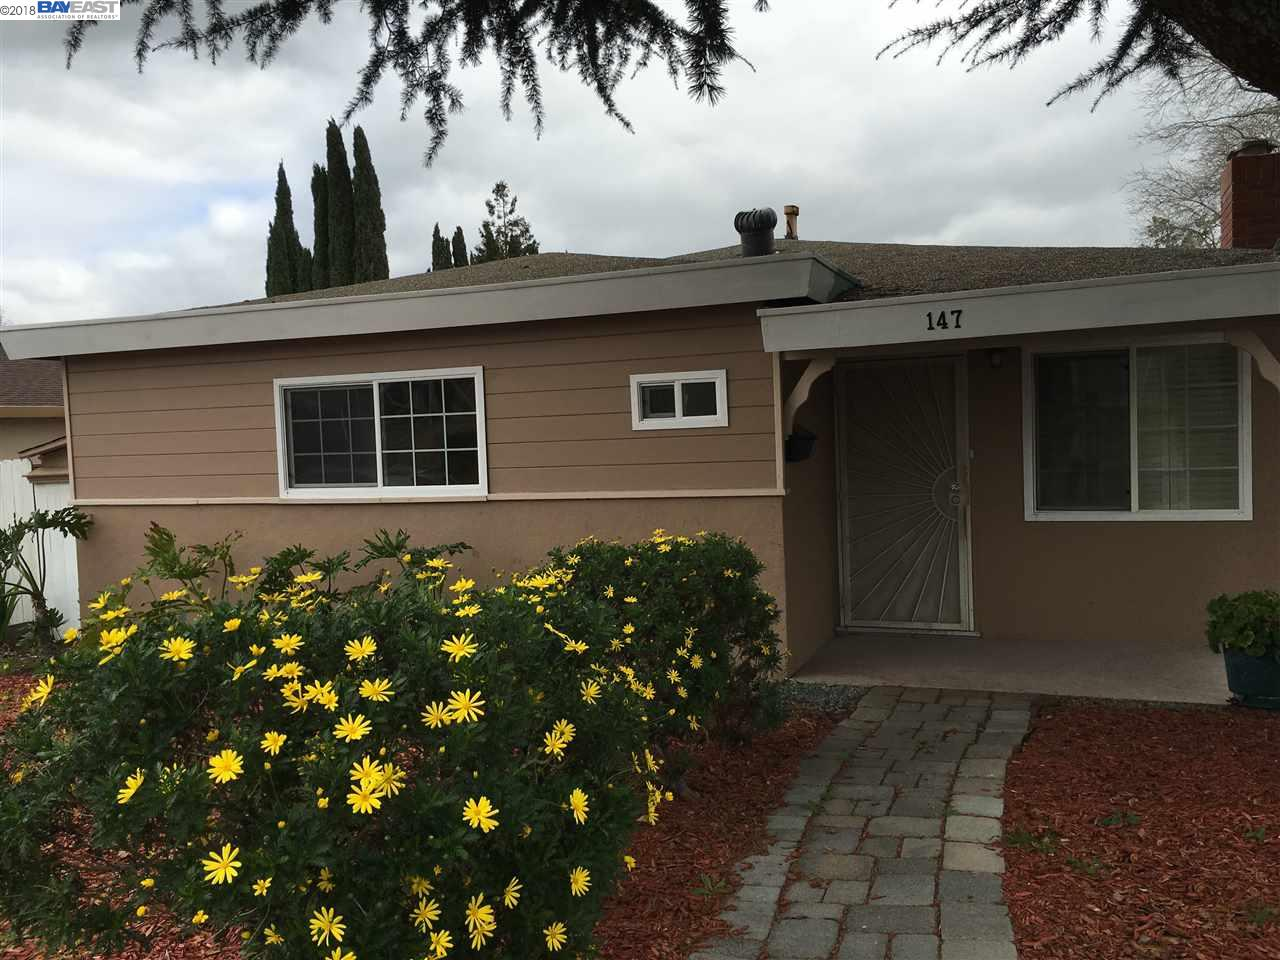 147 Riverview Dr, PITTSBURG, CA 94565